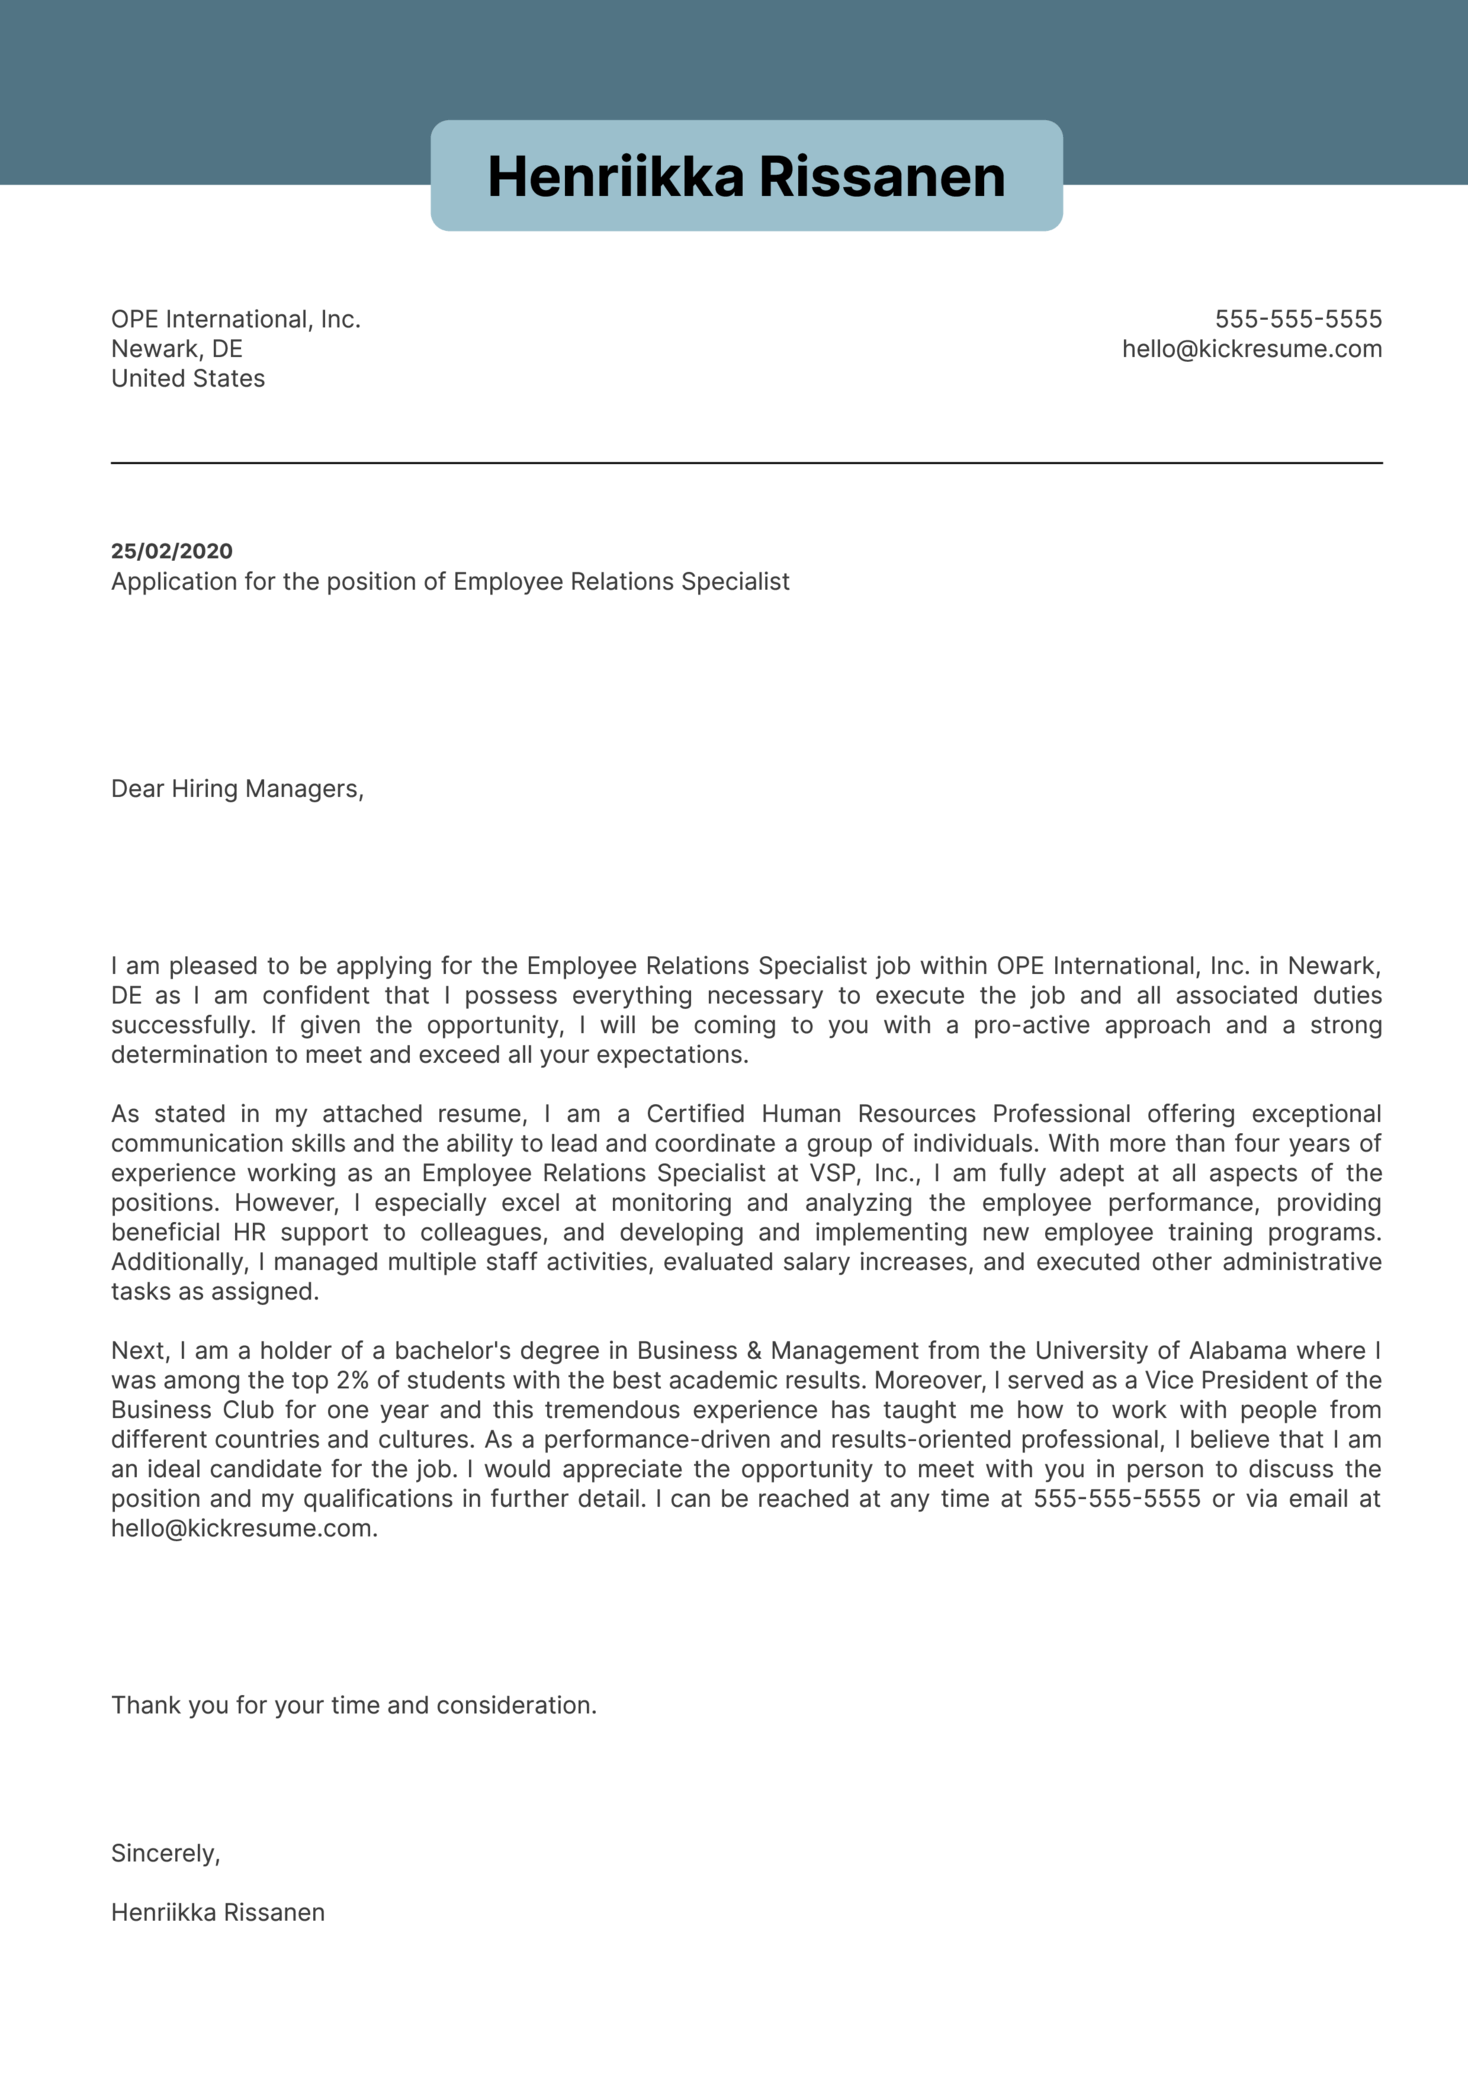 Employee Relations Specialist Cover Letter Example